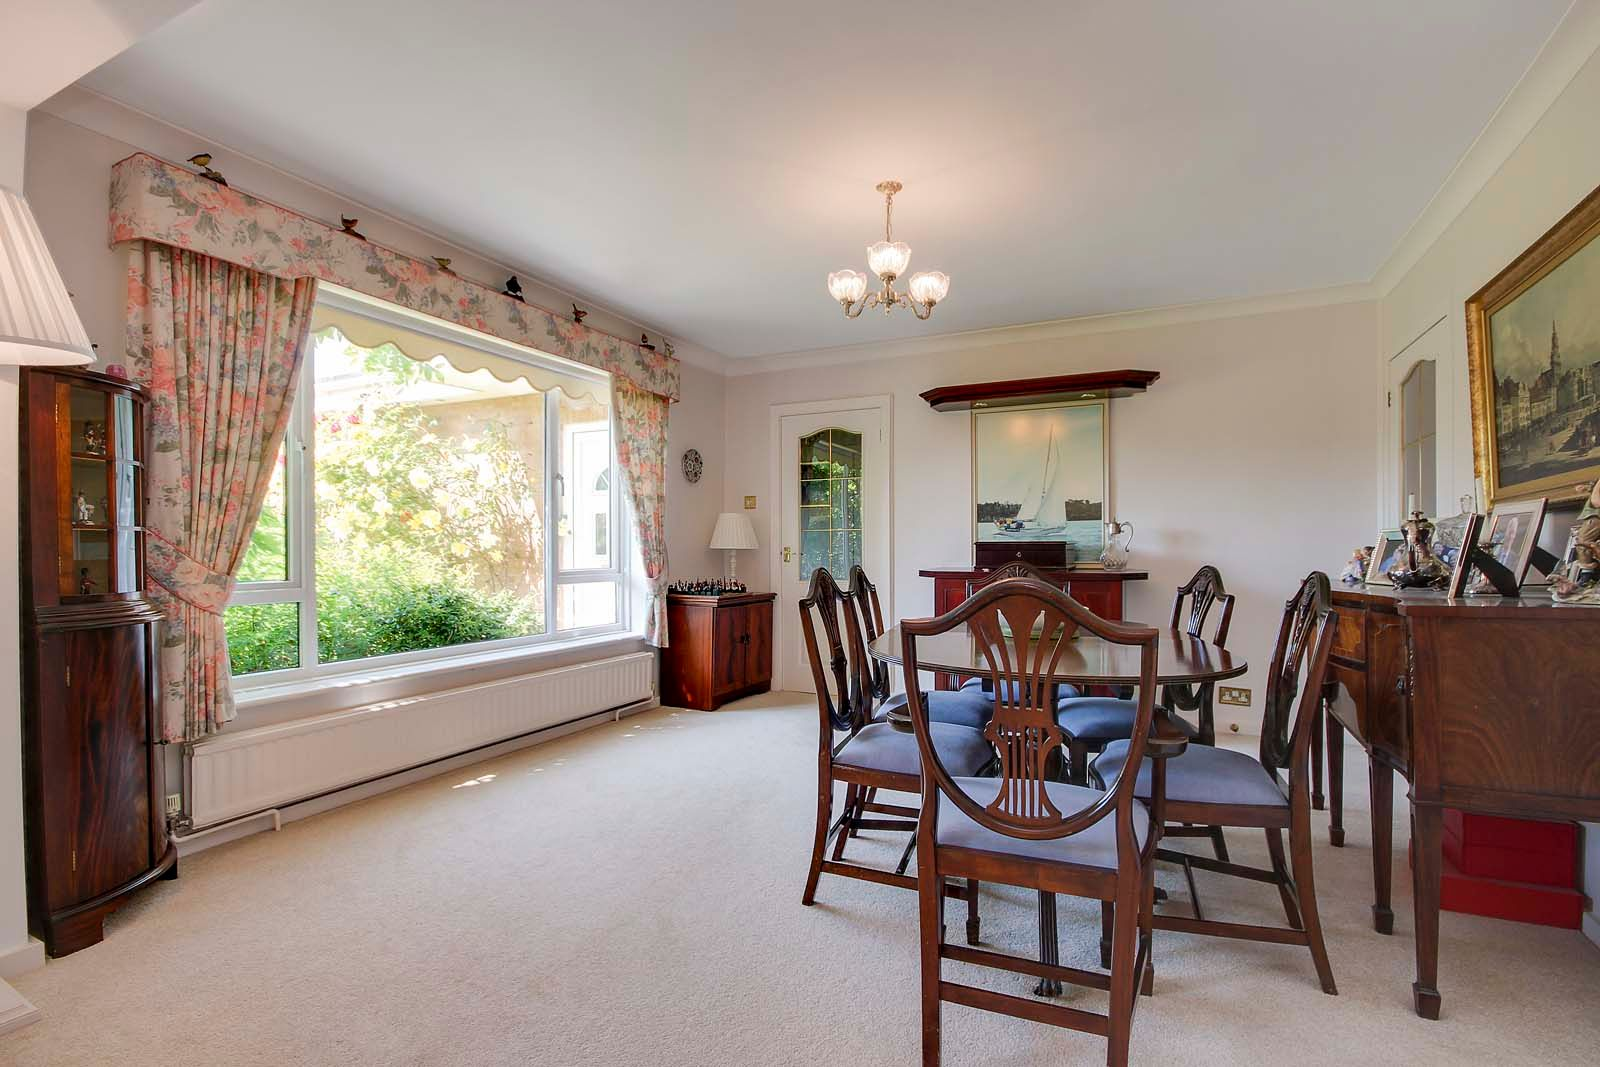 5 bed house for sale in The Ridings COMP 2019 6